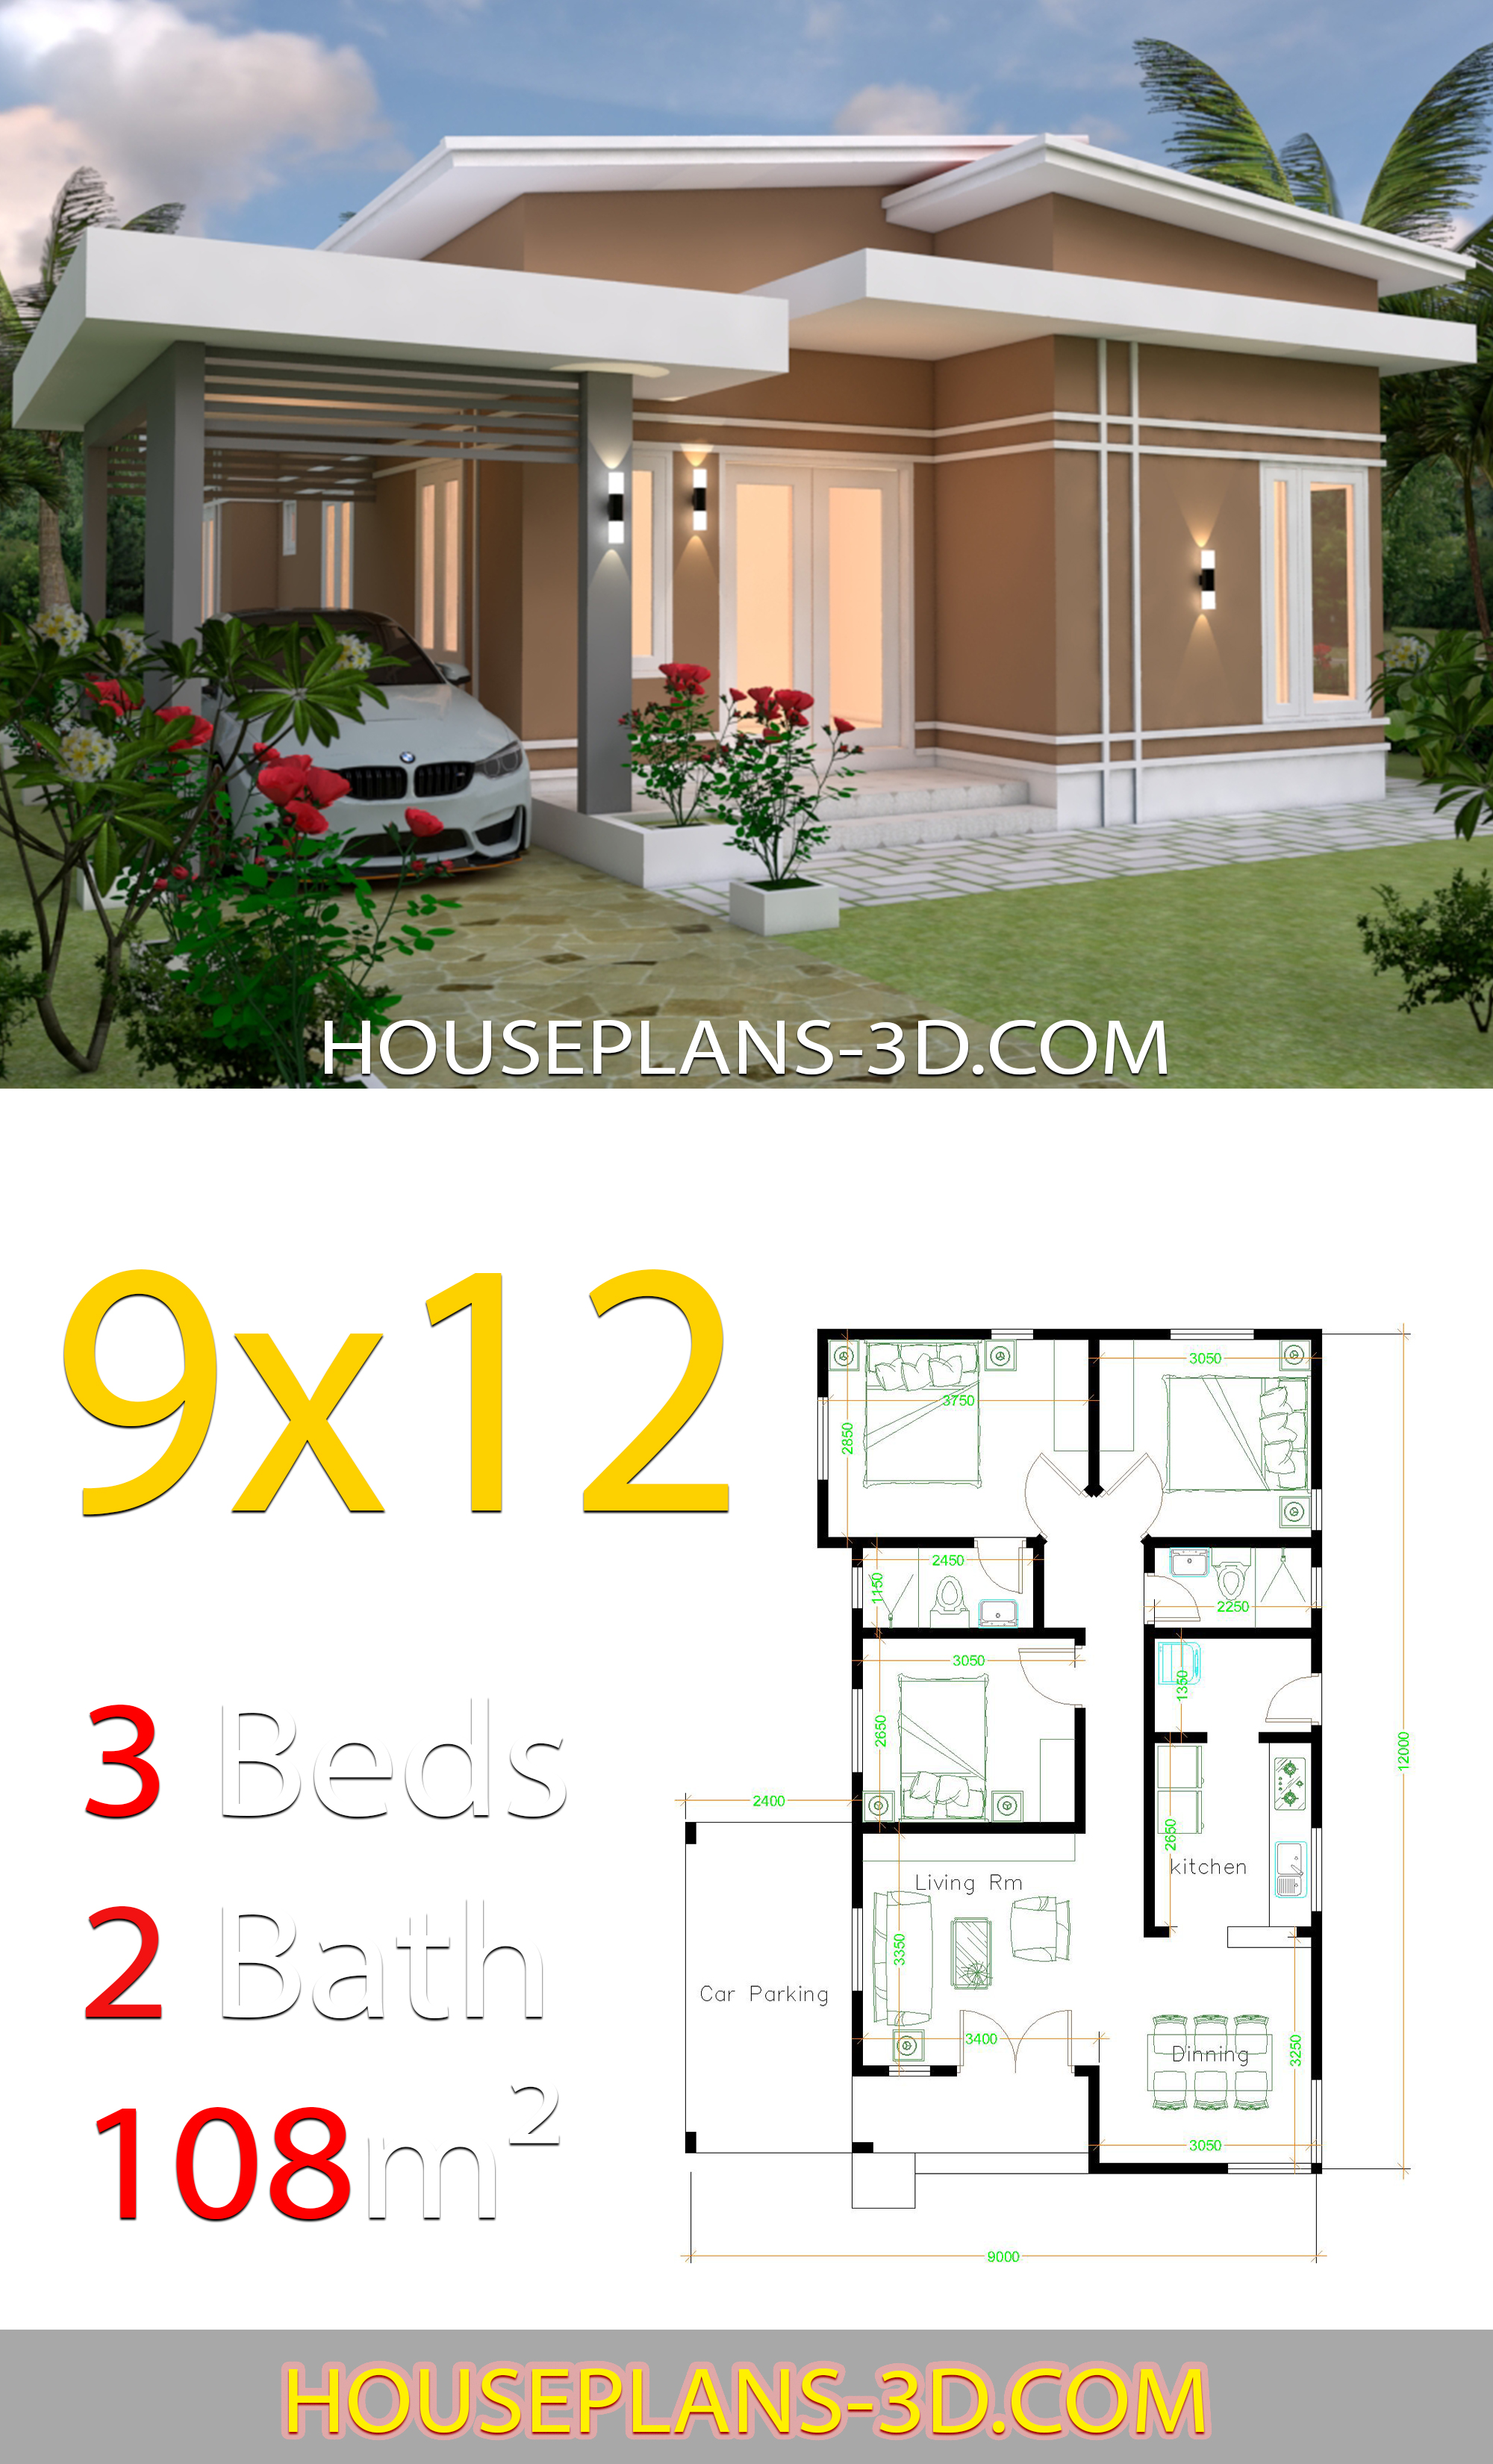 My 3d Room Design: House Design 9x12 With 3 Bedrooms Slop Roof